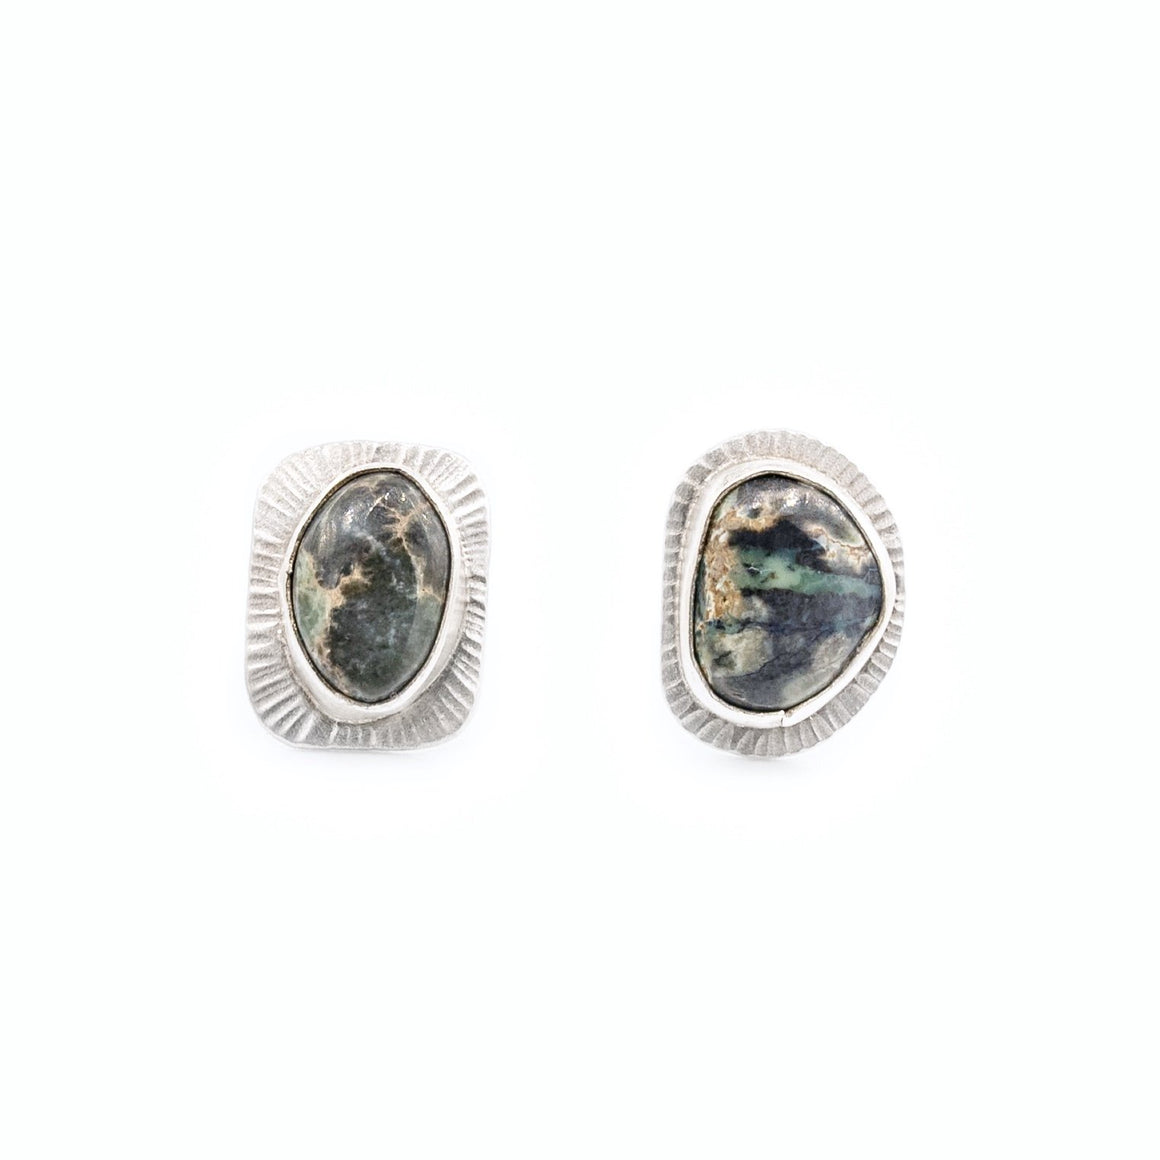 Damele Turquoise Silver Stud Earrings by Original Sin Jewelry